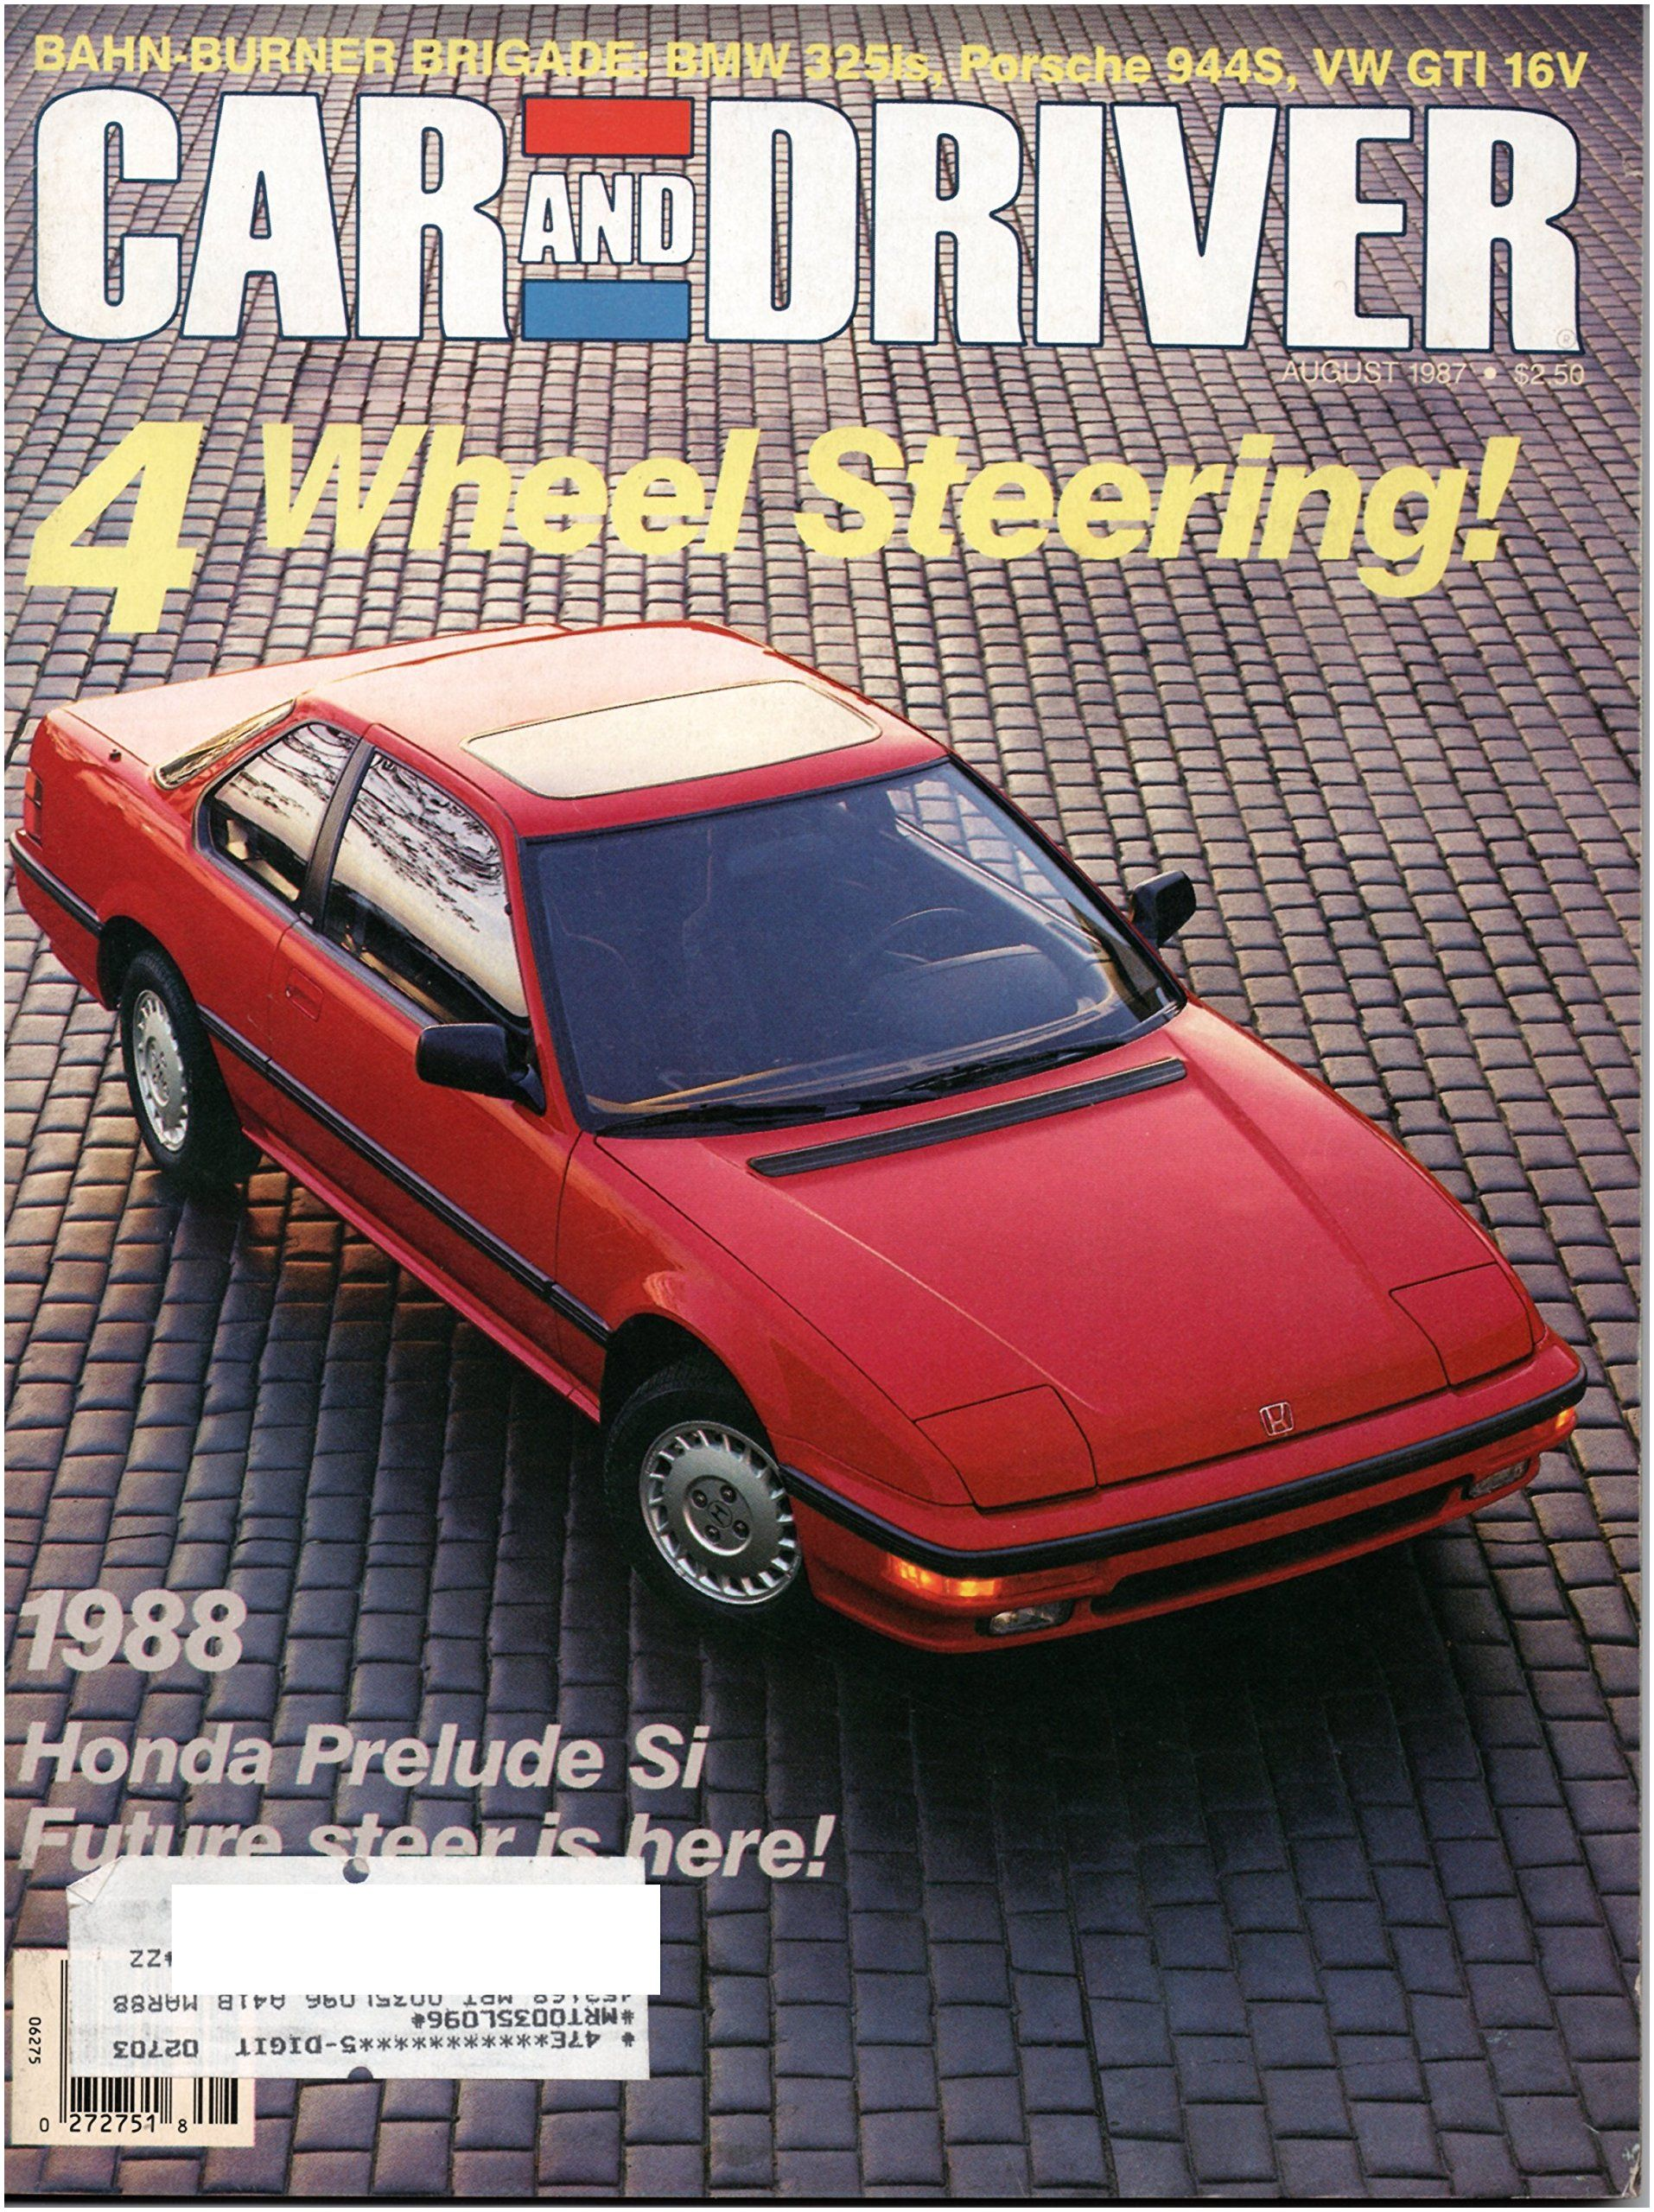 Car and Driver Magazine Customer Service Car and Driver Magazine August 1987 Vol 33 No 2 Rich Ceppos